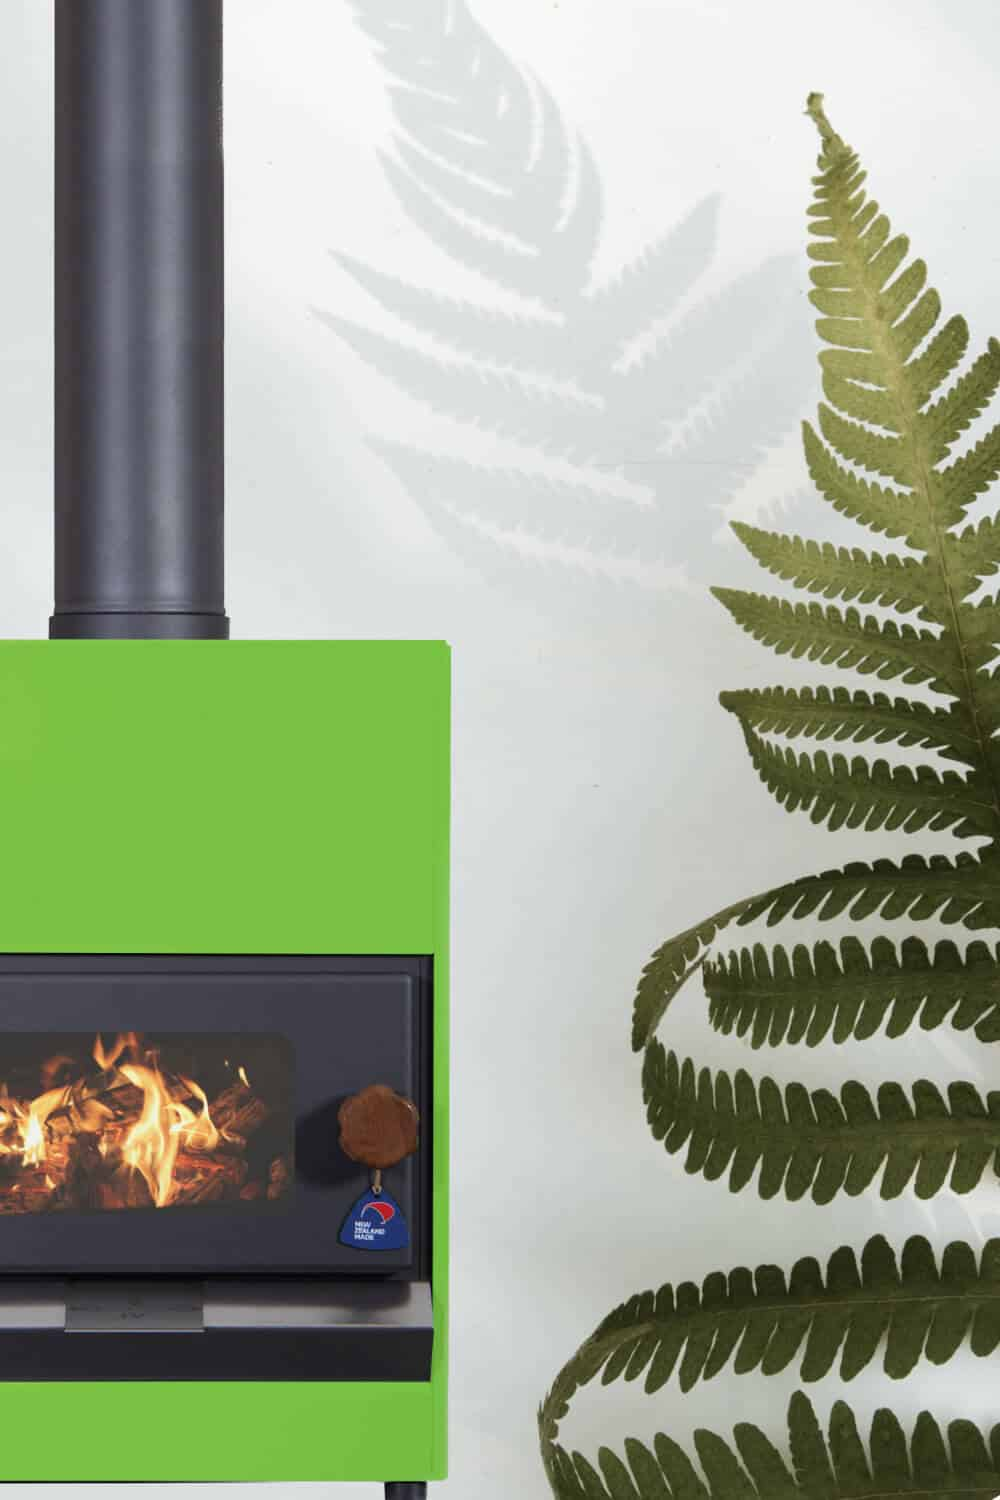 Pyroclassic in Telecom Green colour with fern next to it